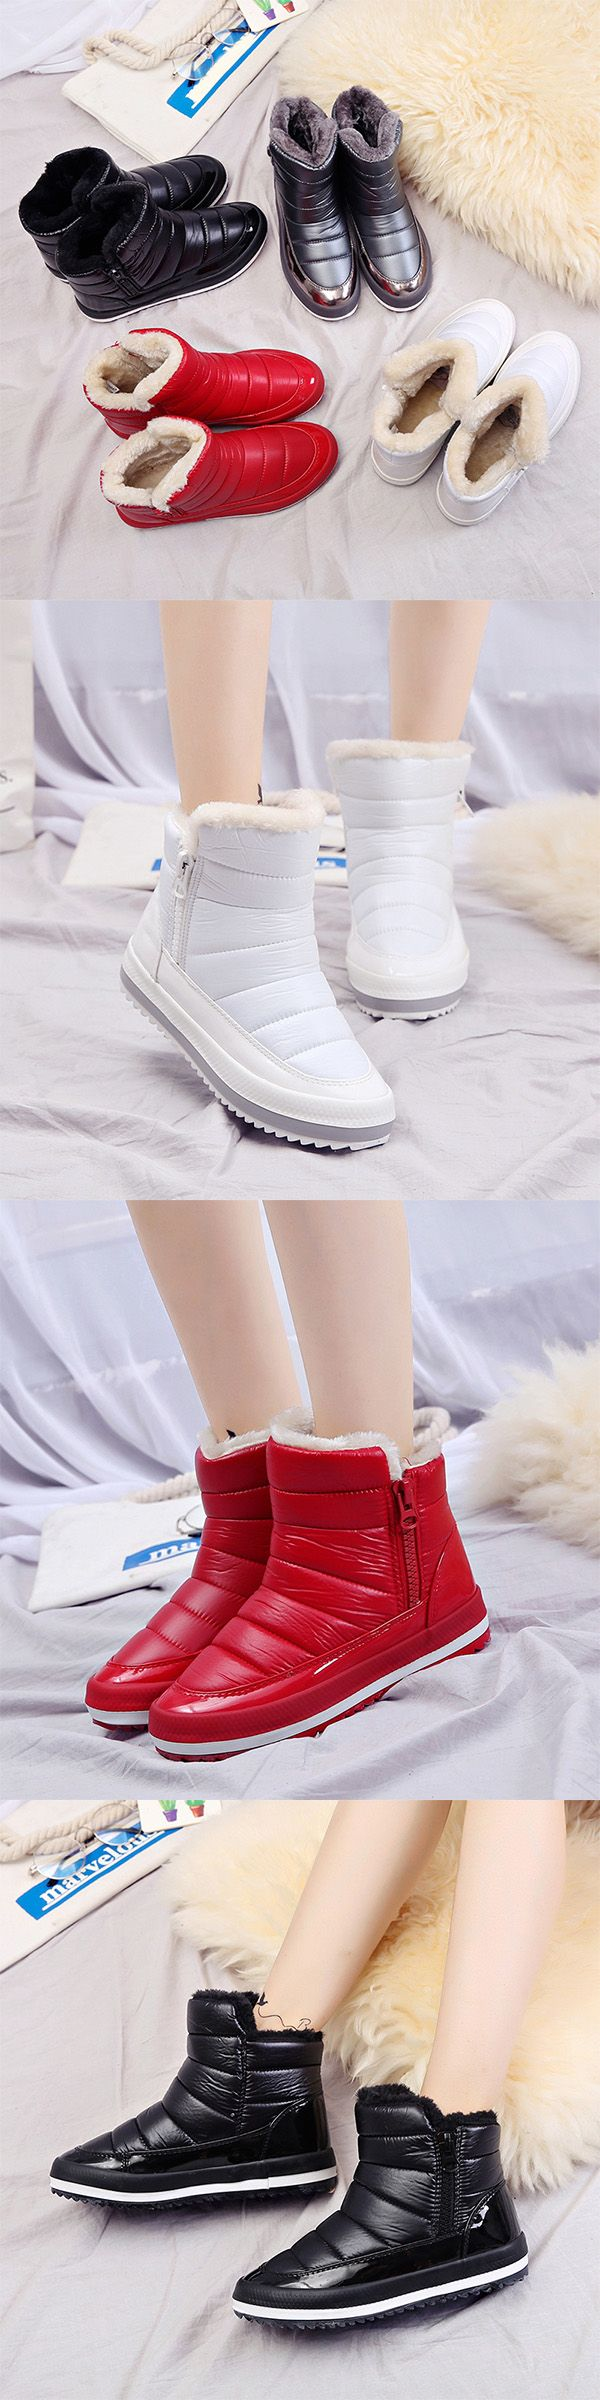 US$24.52    M.GENERAL Waterproof Warm Pure Colour Fur Lining Short Snow boots For Women